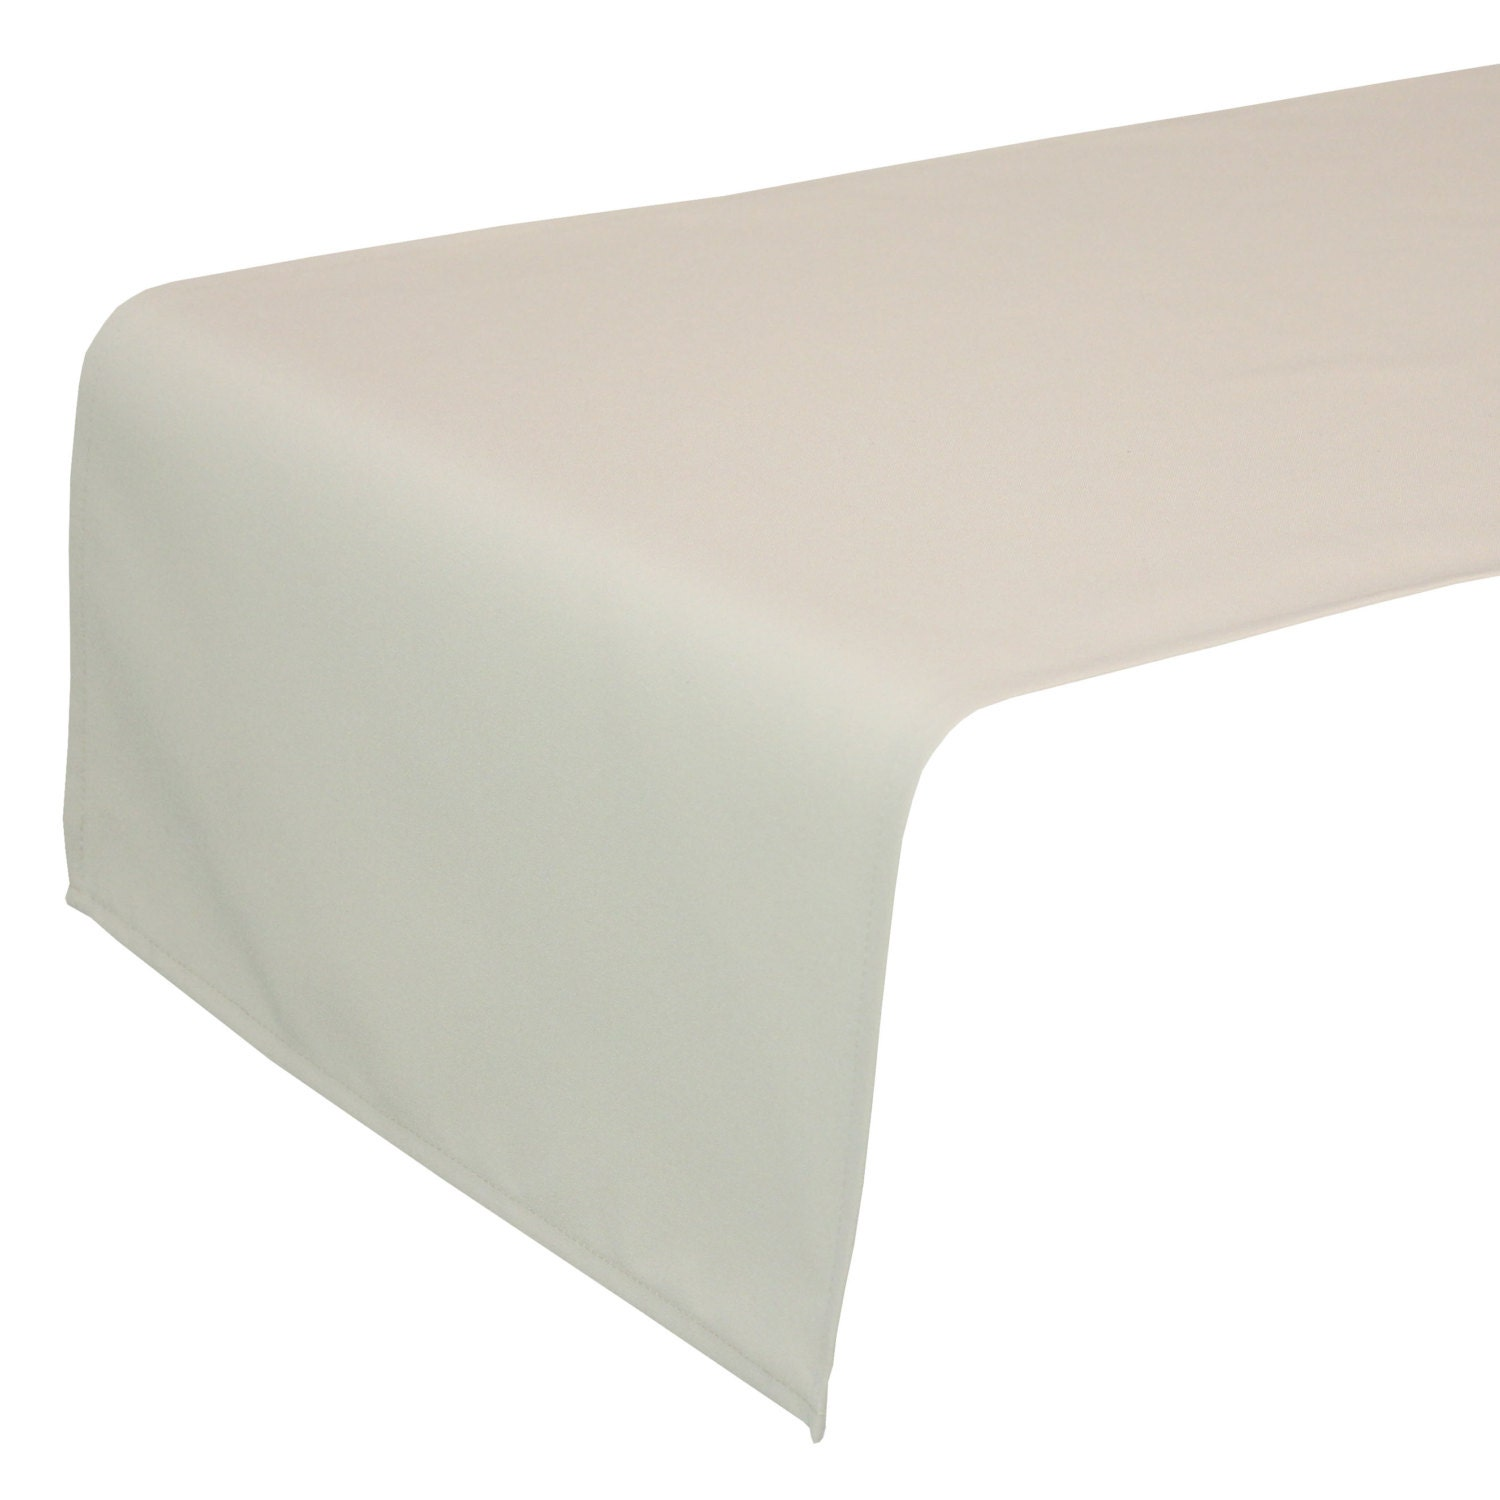 Champagne Table Runner 14 X 108 Inches Matte Champagne Table # Champagne Muebles Uy